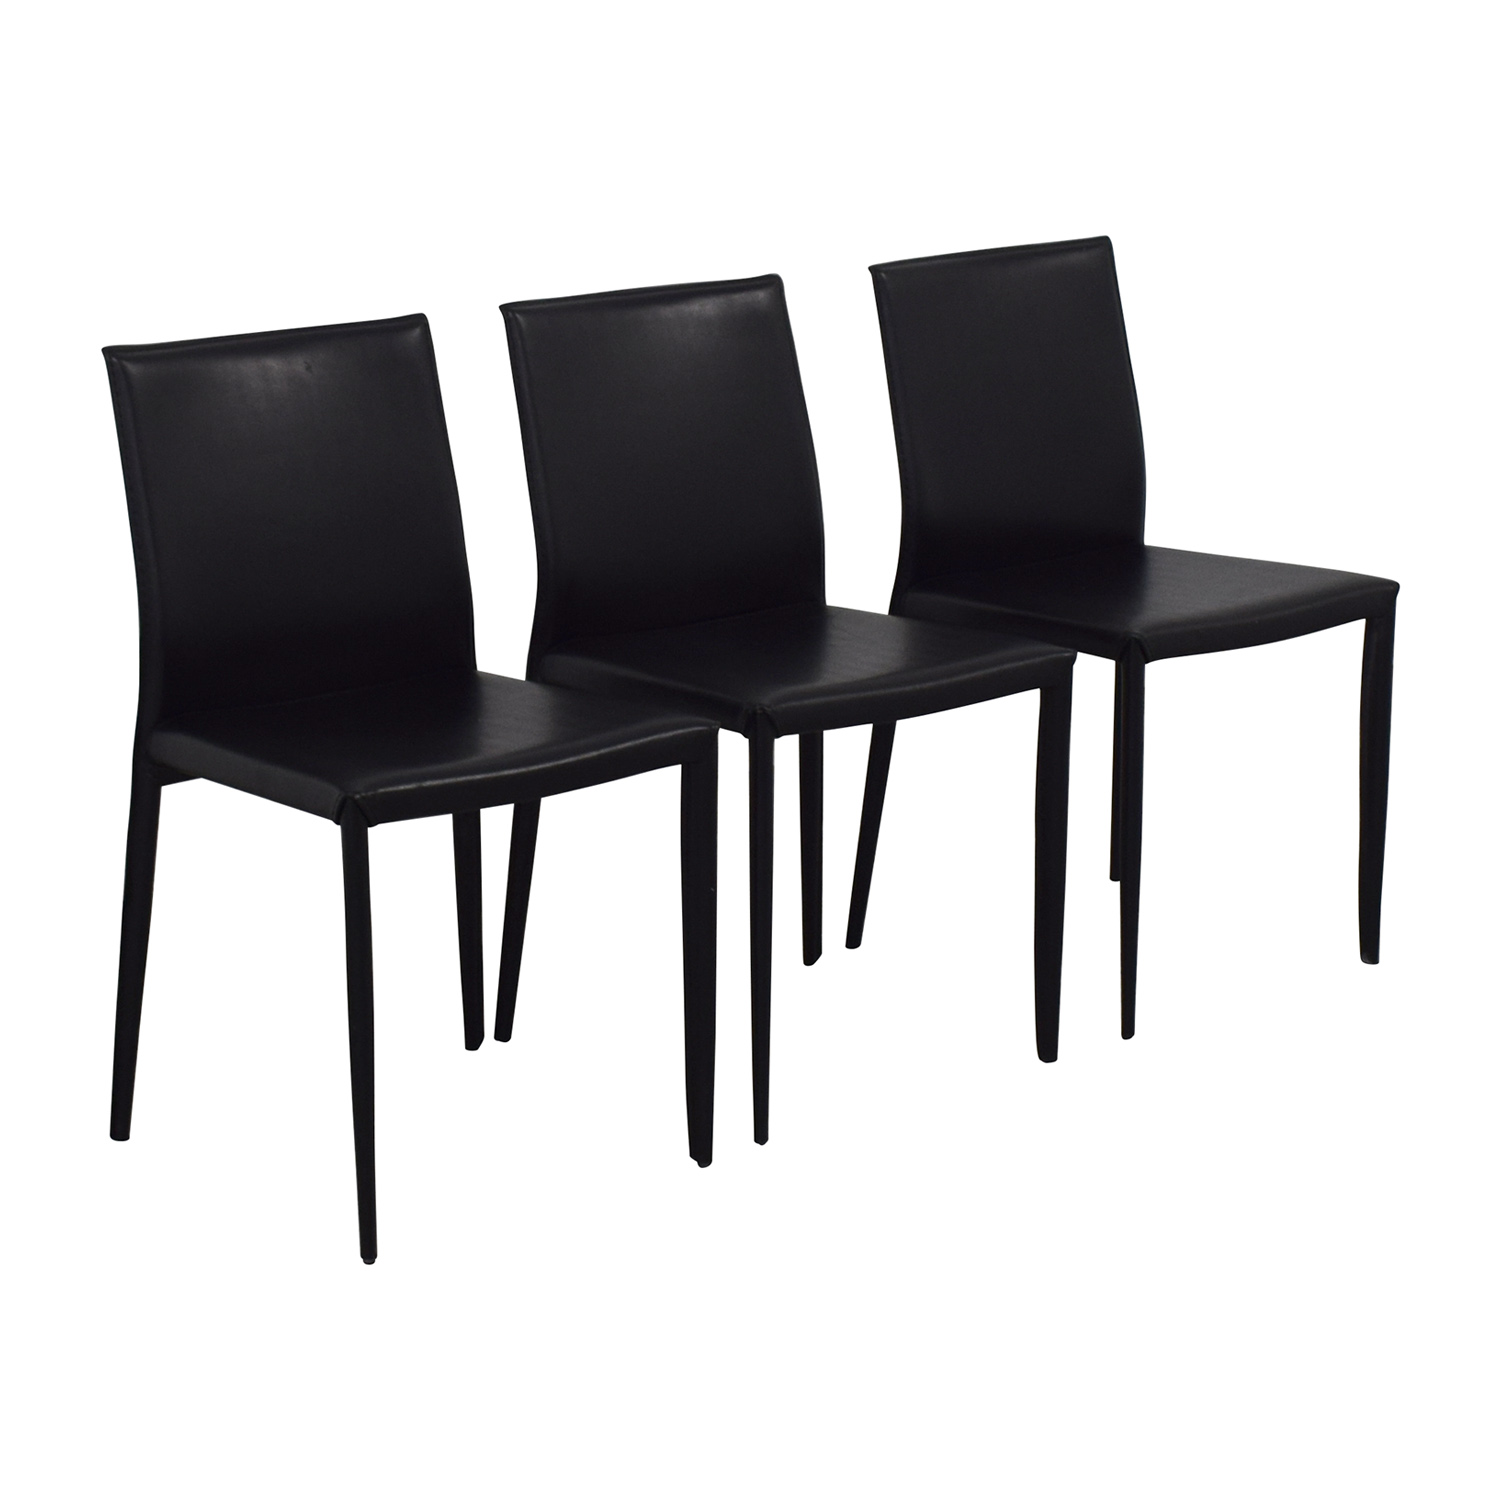 Room & Board Modern Black Dining Chairs / Chairs